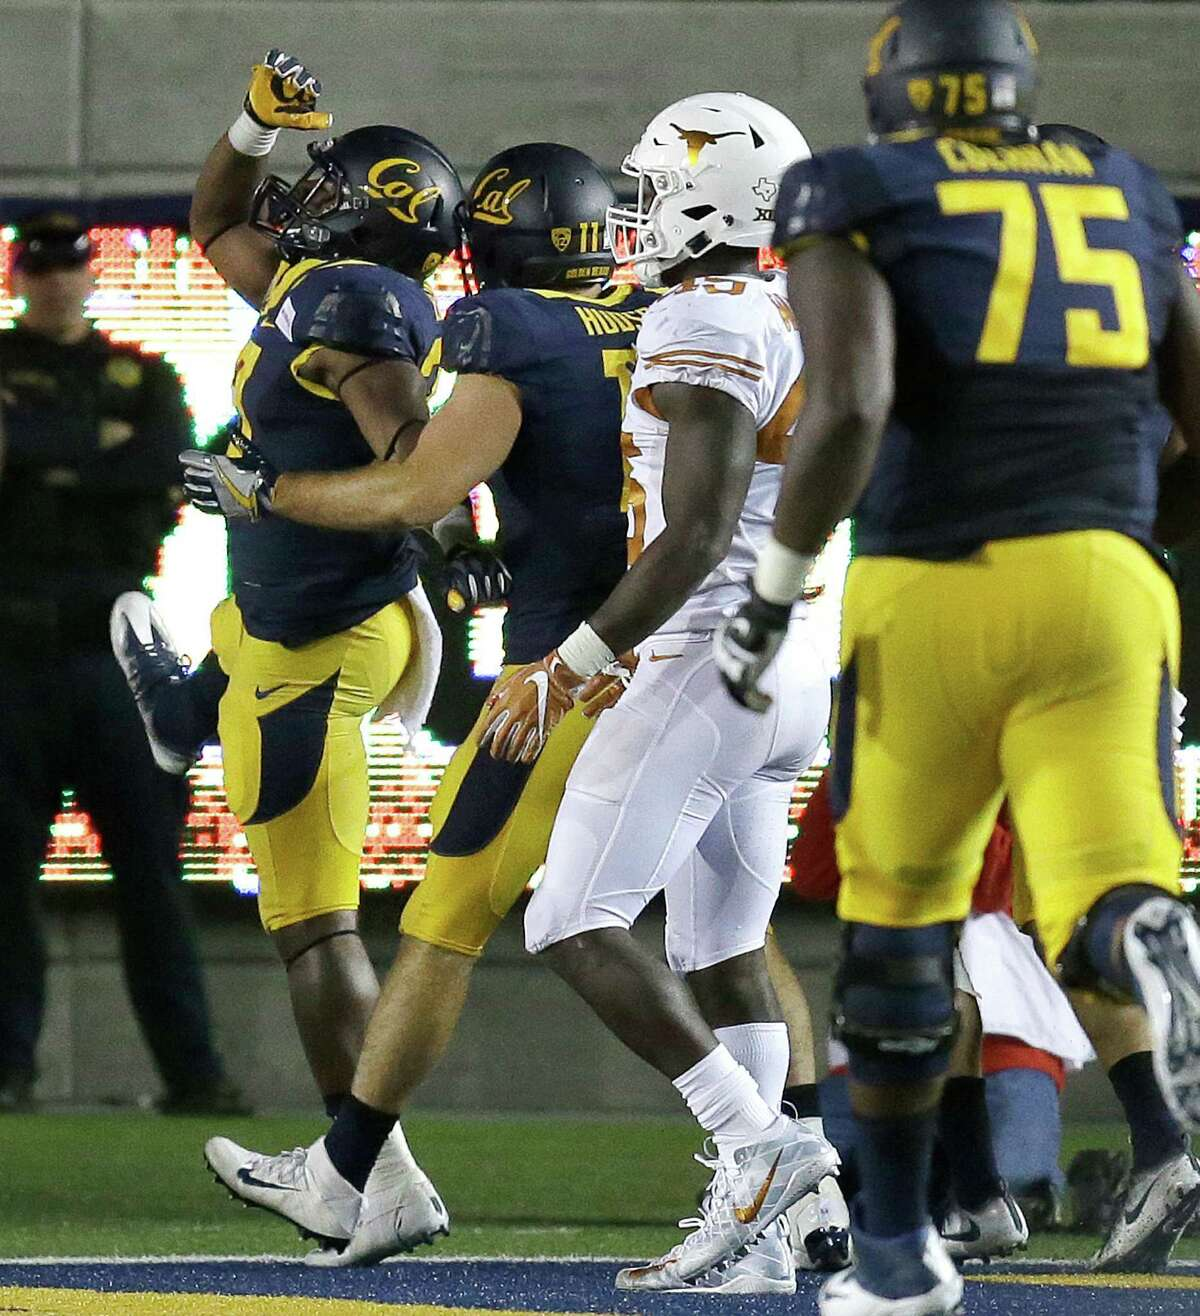 California's Vic Enwere, left, celebrates with Raymond Hudson after scoring a touchdown against Texas during the fourth quarter of an NCAA college football game Saturday, Sept. 17, 2016, in Berkeley, Calif. California won 50-43. (AP Photo/Ben Margot)